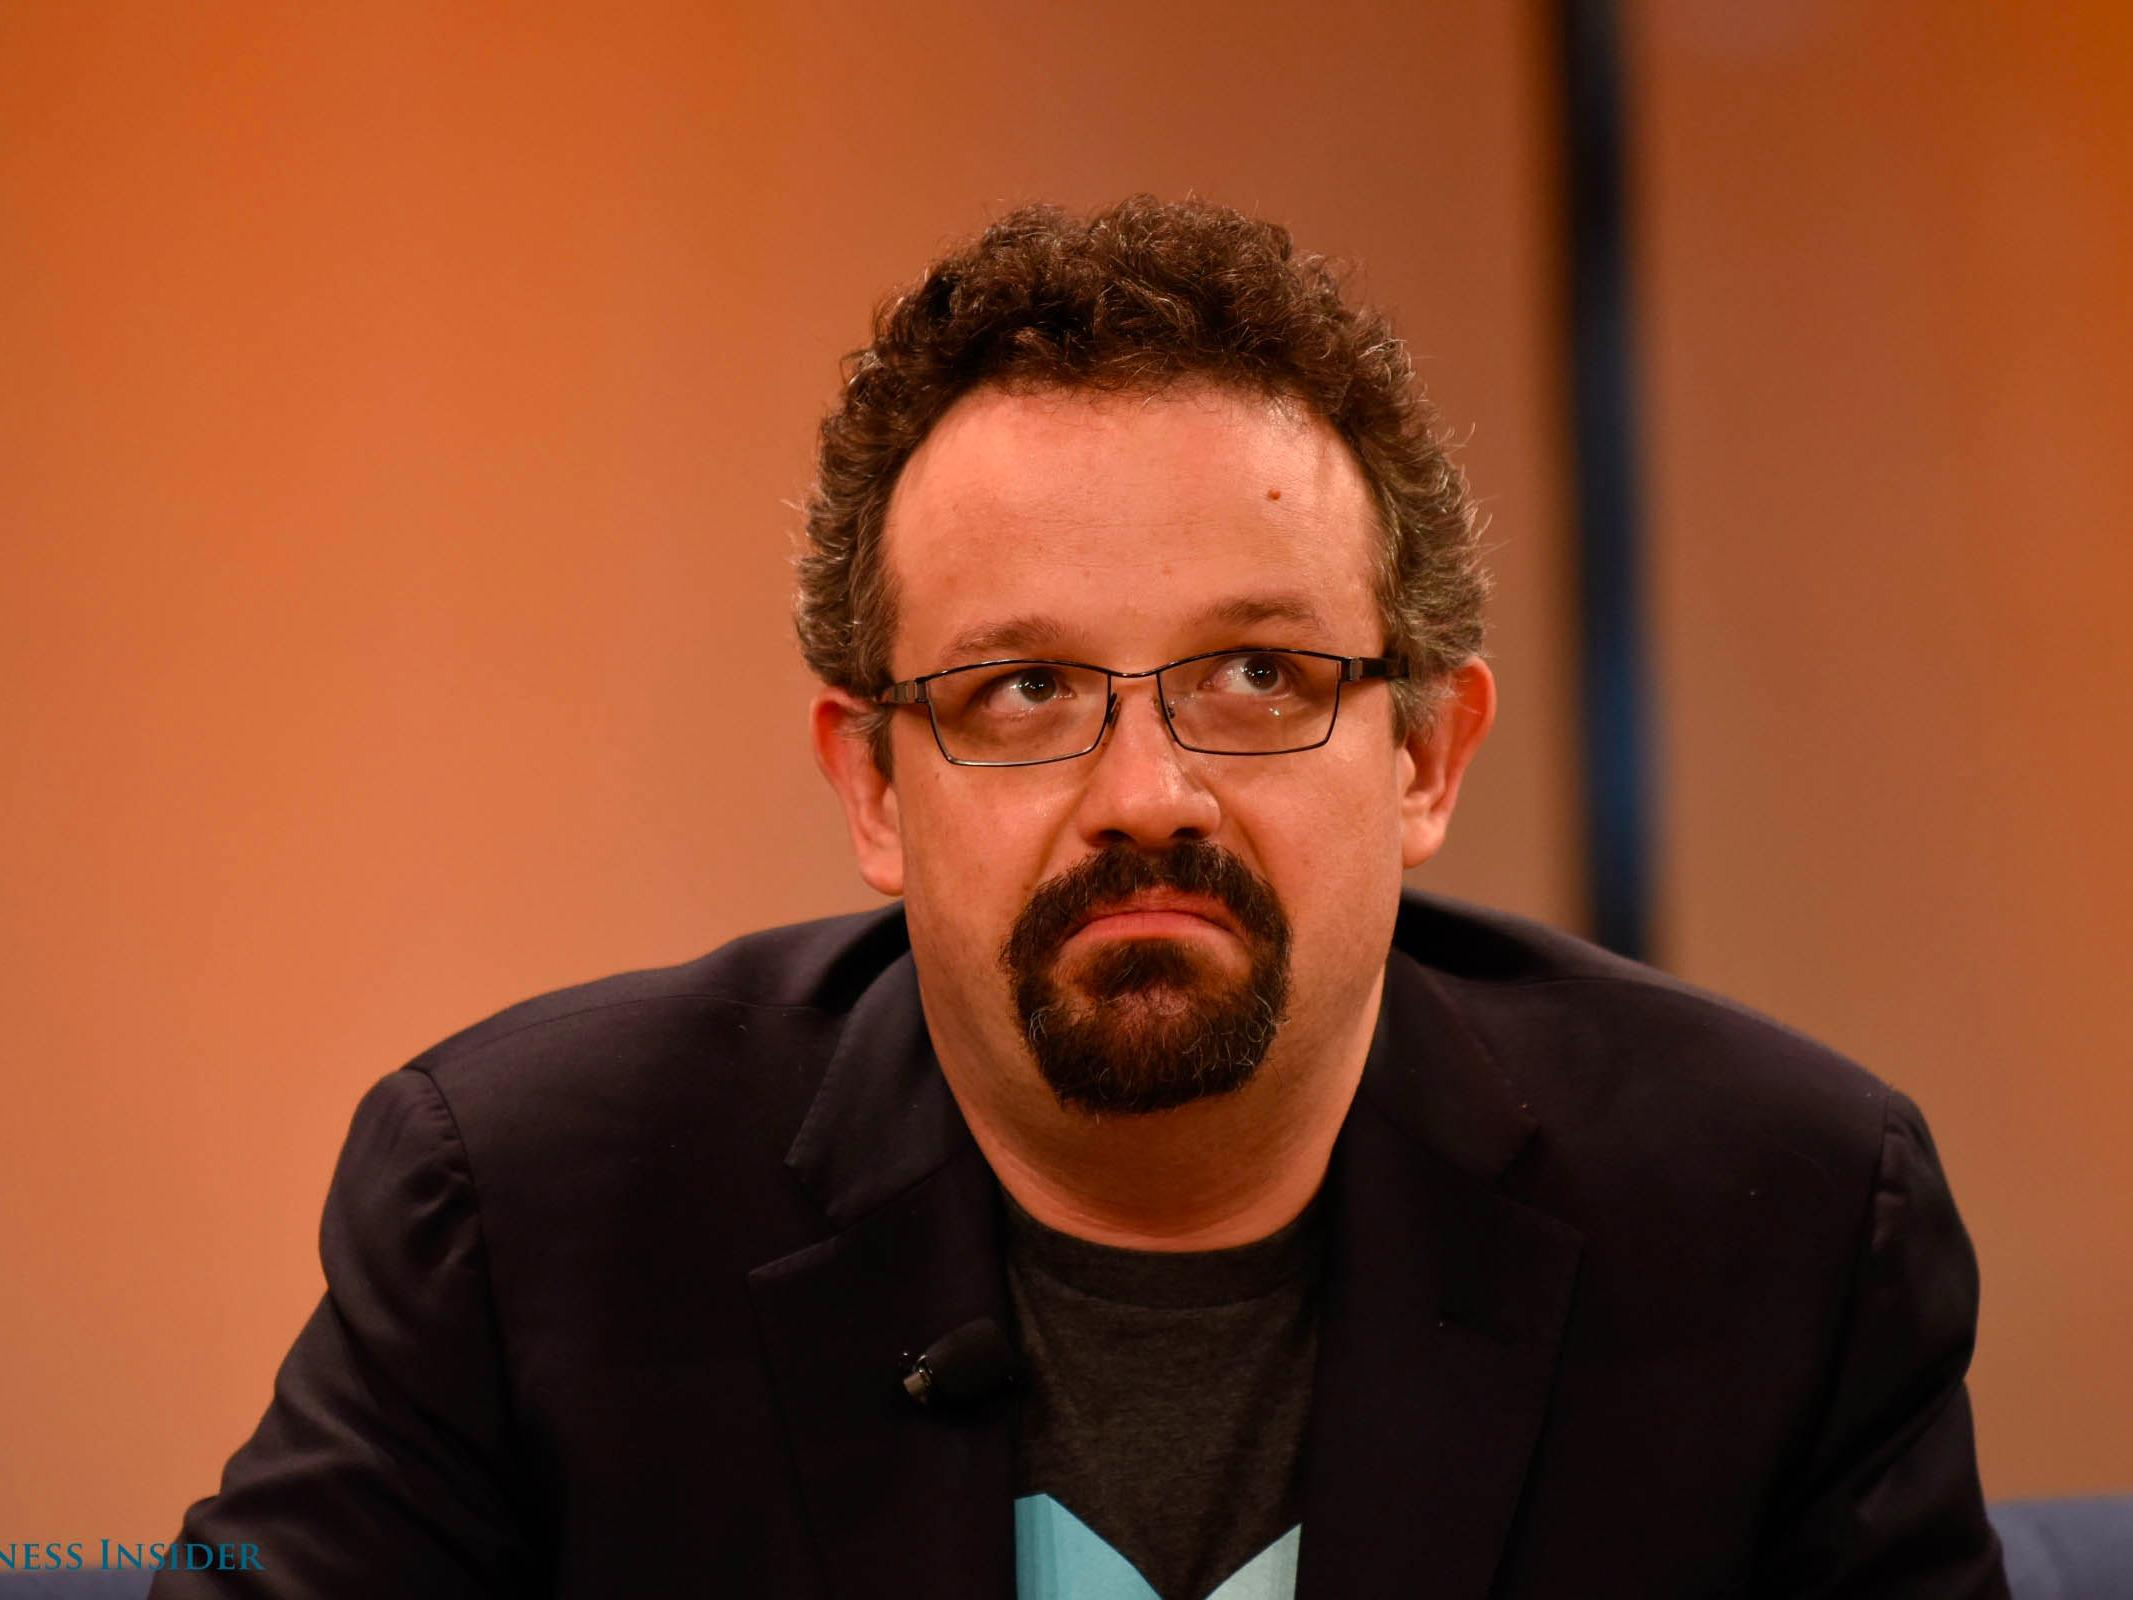 The inside story of how $1 billion Evernote went from Silicon Valley darling to deep trouble